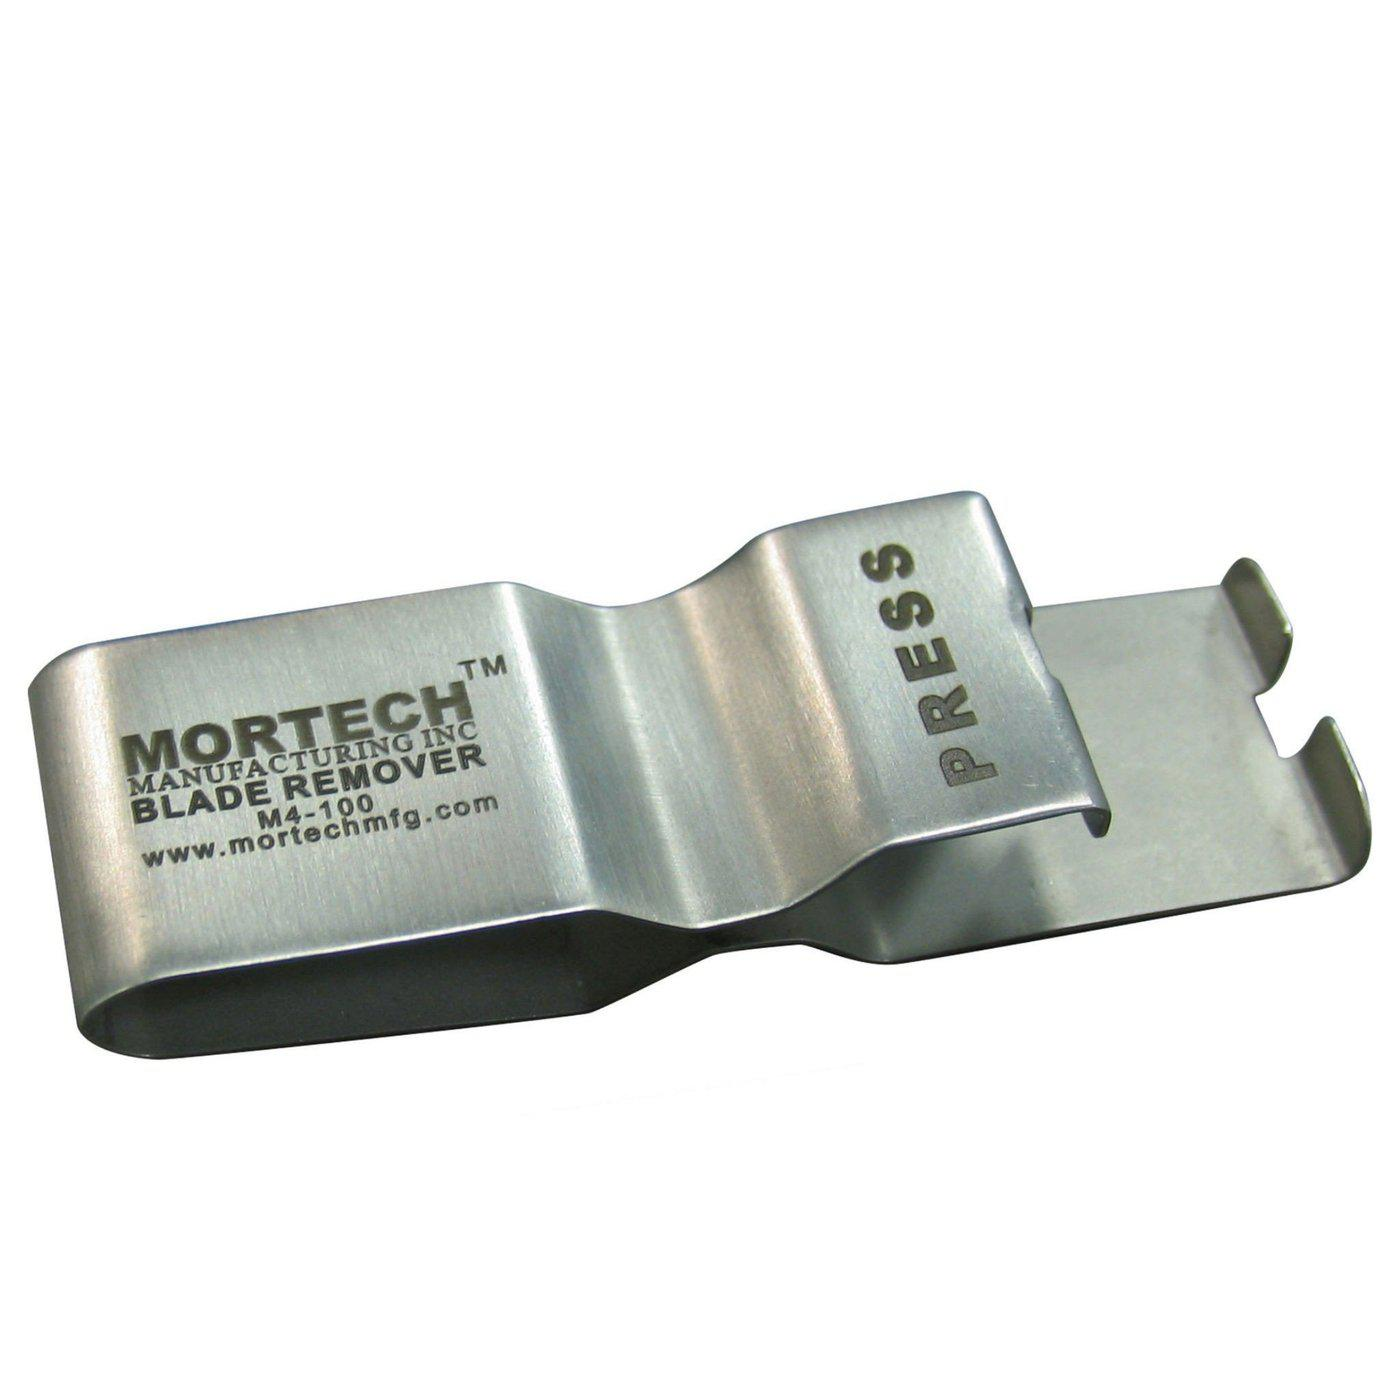 Surgical Blade Remover-Dissecting Instruments-Mortech Manufacturing Company Inc. Quality Stainless Steel Autopsy, Morgue, Funeral Home, Necropsy, Veterinary / Anatomy, Dissection Equipment and Accessories